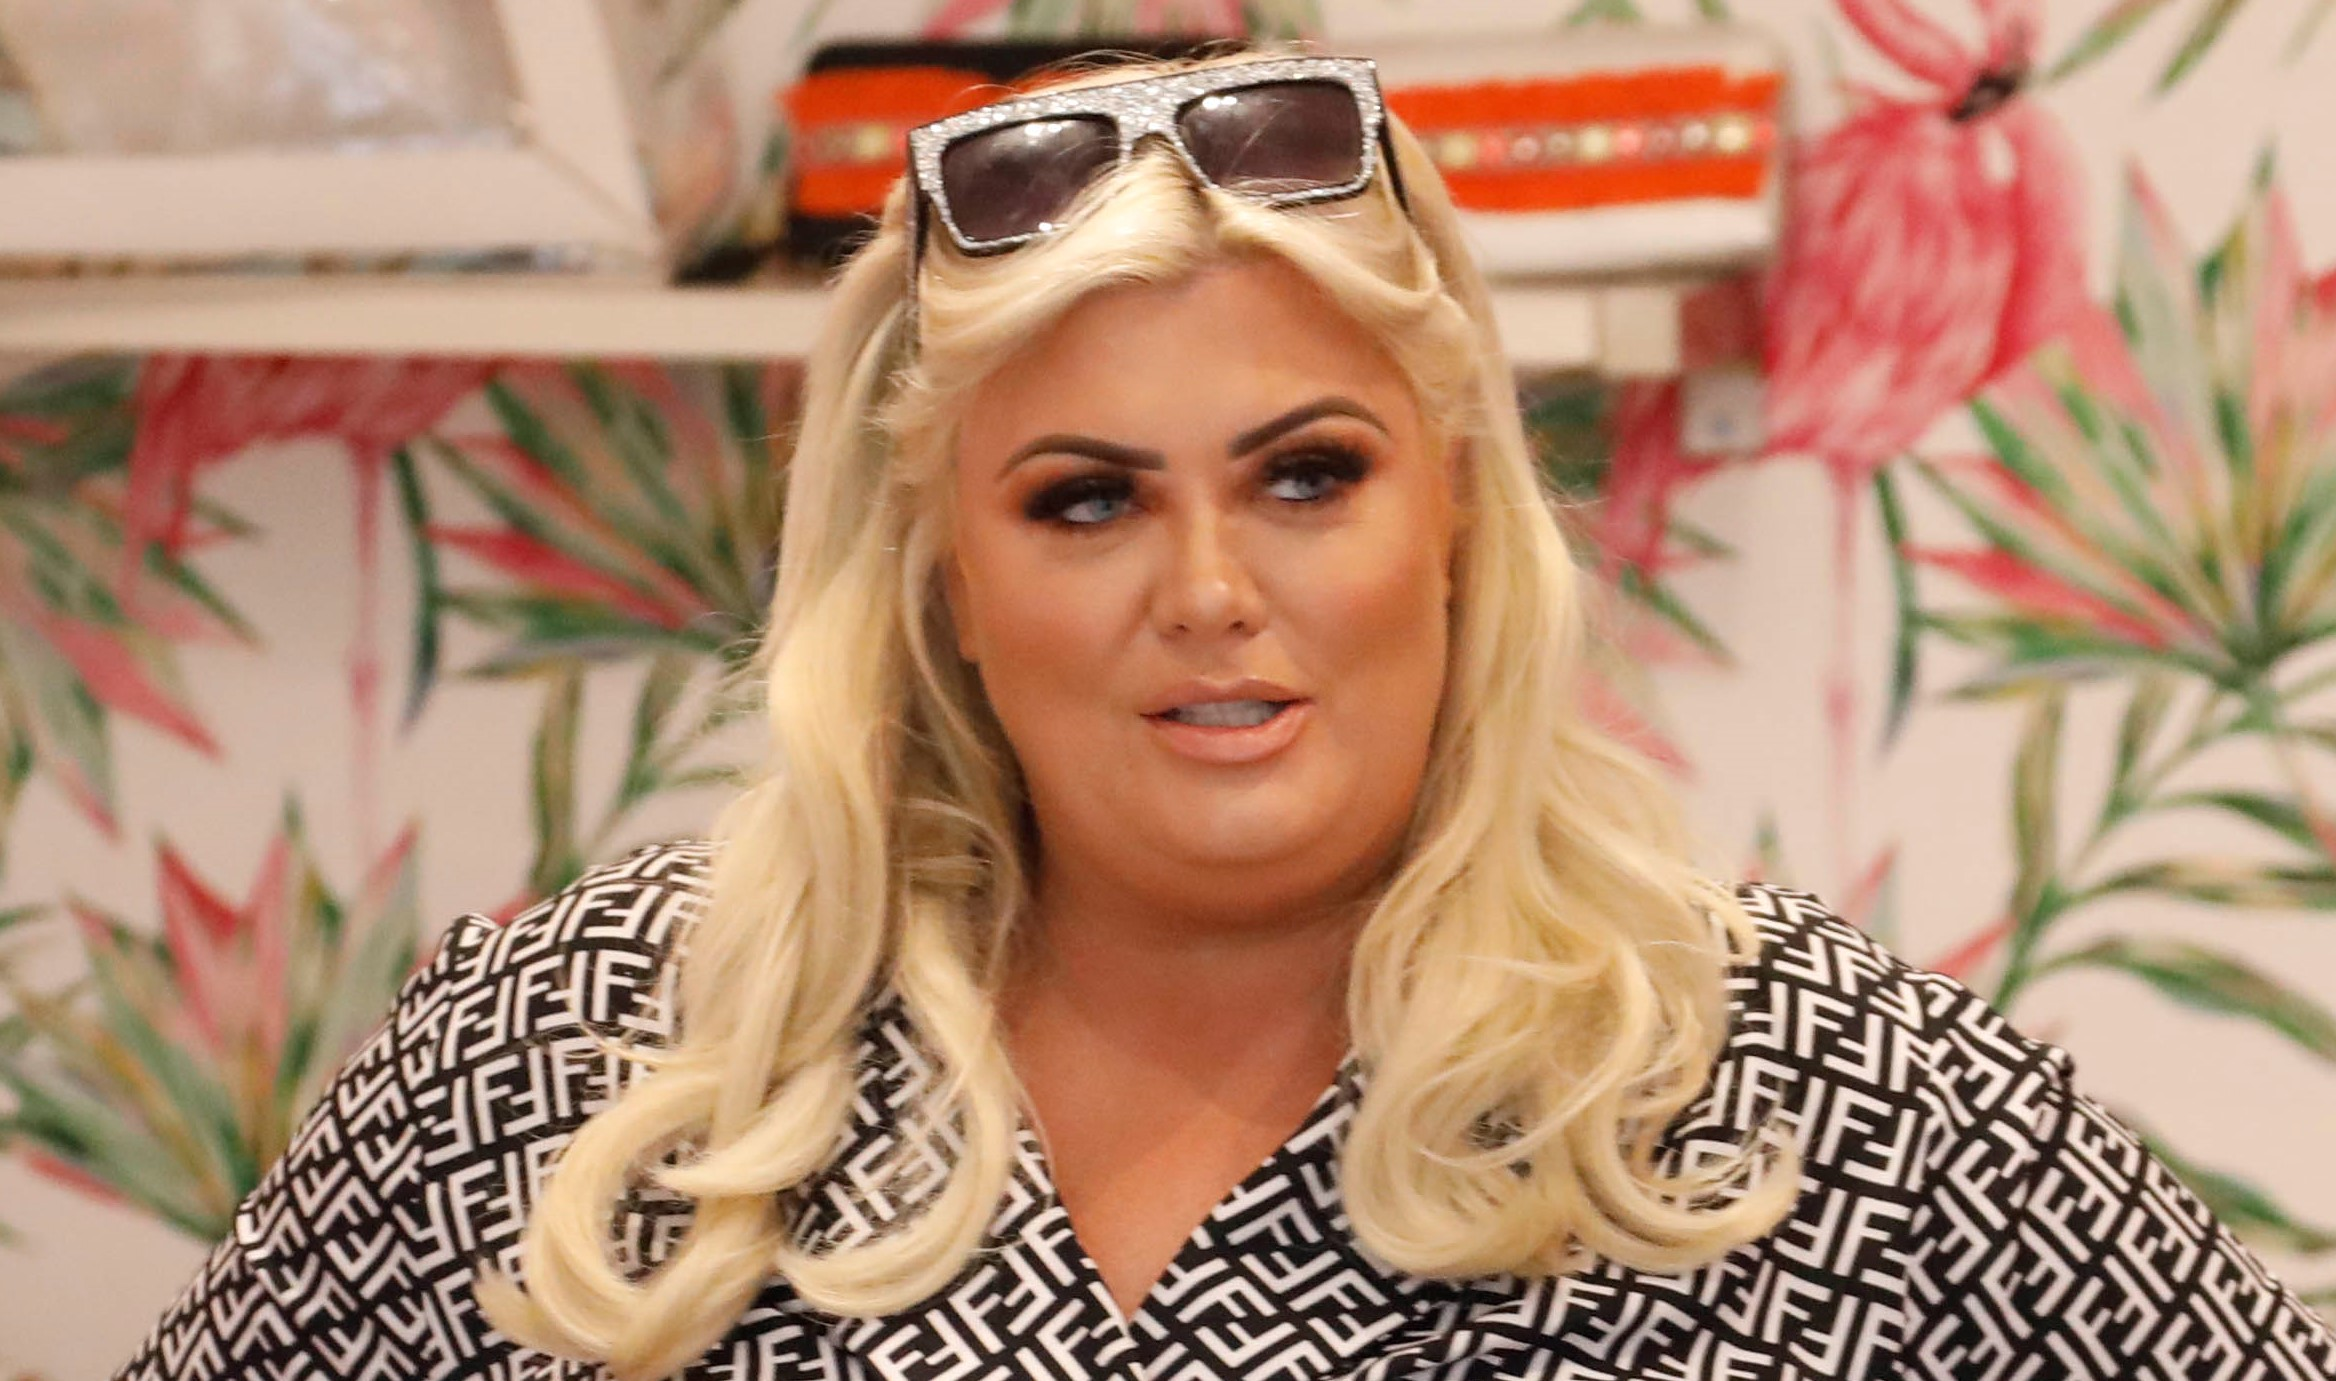 Gemma Collins flashes bum as she dances in thong swimsuit